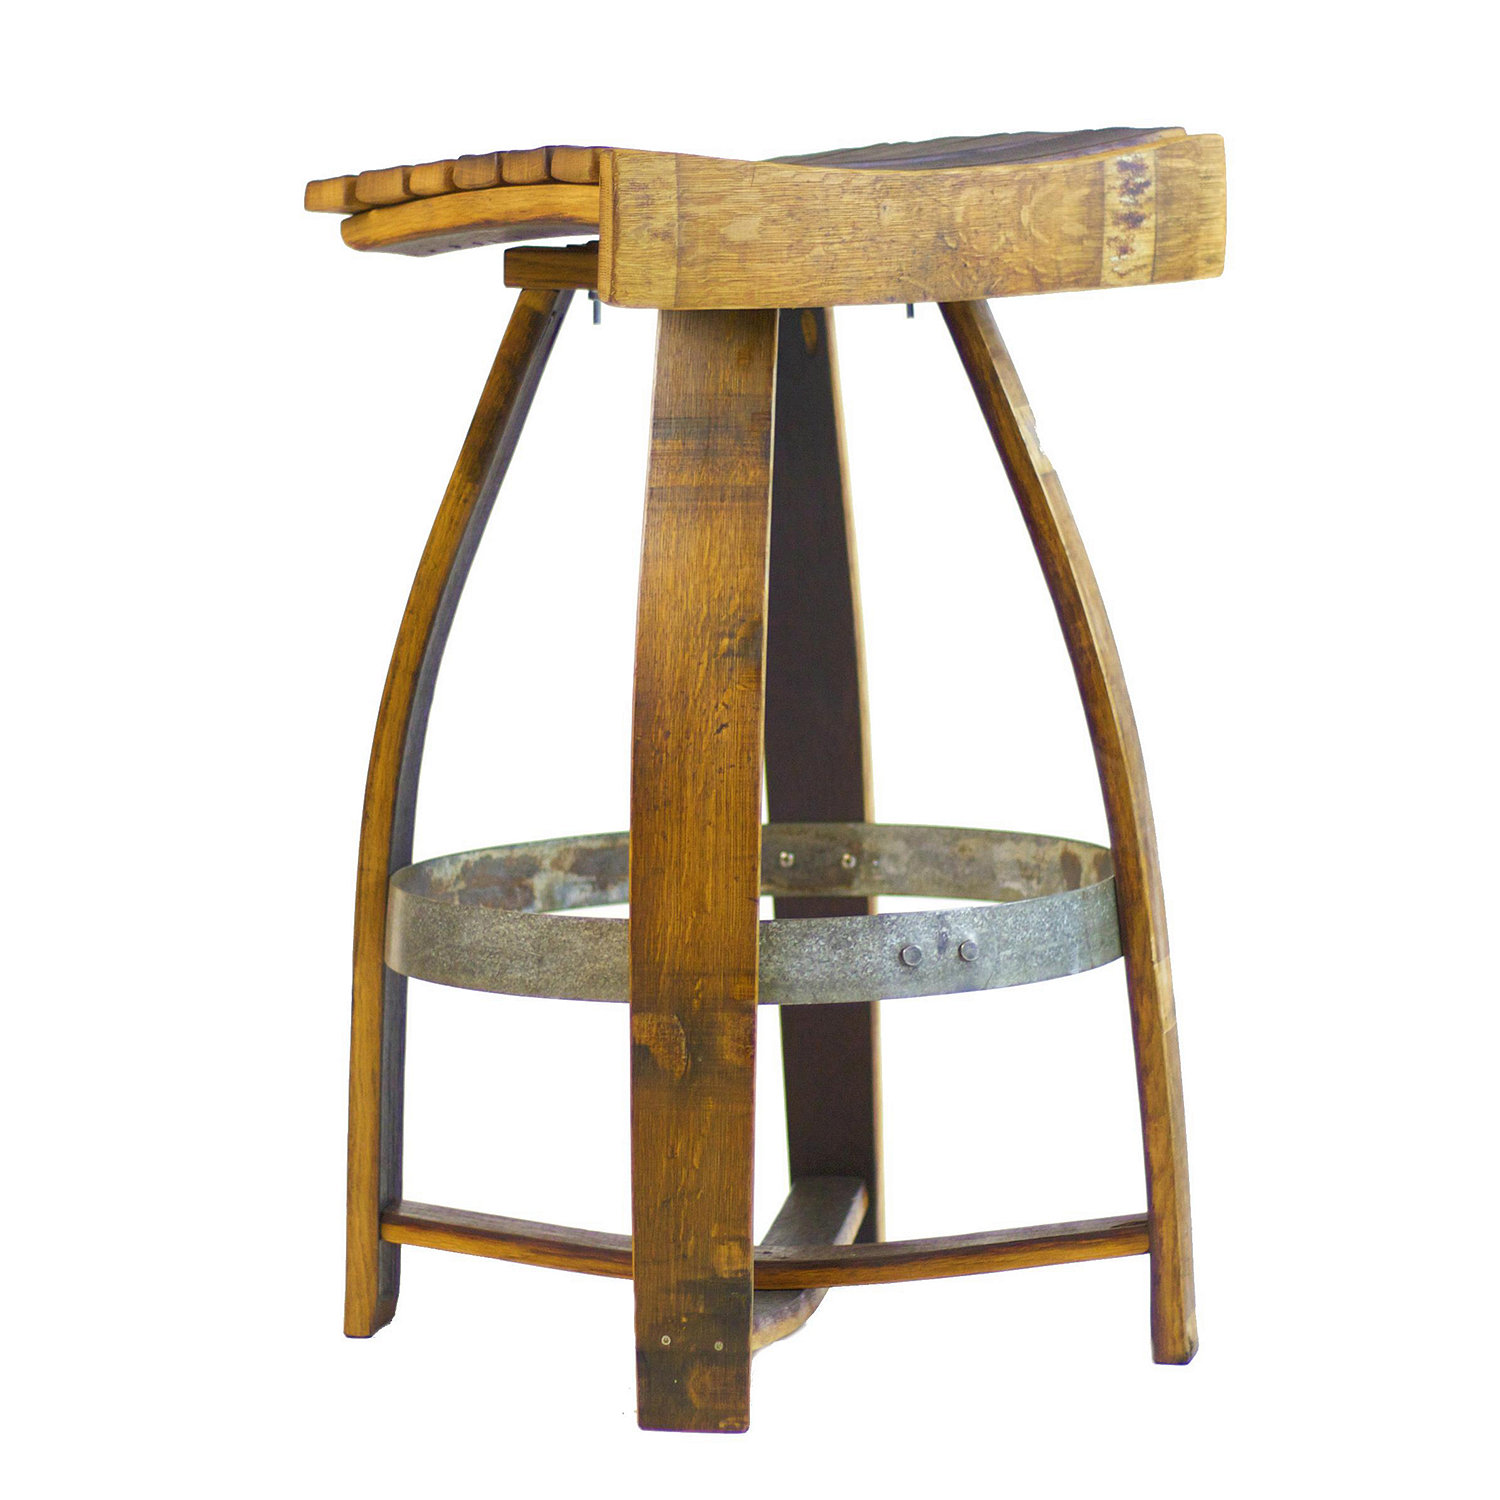 ... Bar Stool with Memory Swivel. Preparing Zoom  sc 1 st  Wine Enthusiast & Wine Barrel Bar Stool with Memory Swivel - Wine Enthusiast islam-shia.org